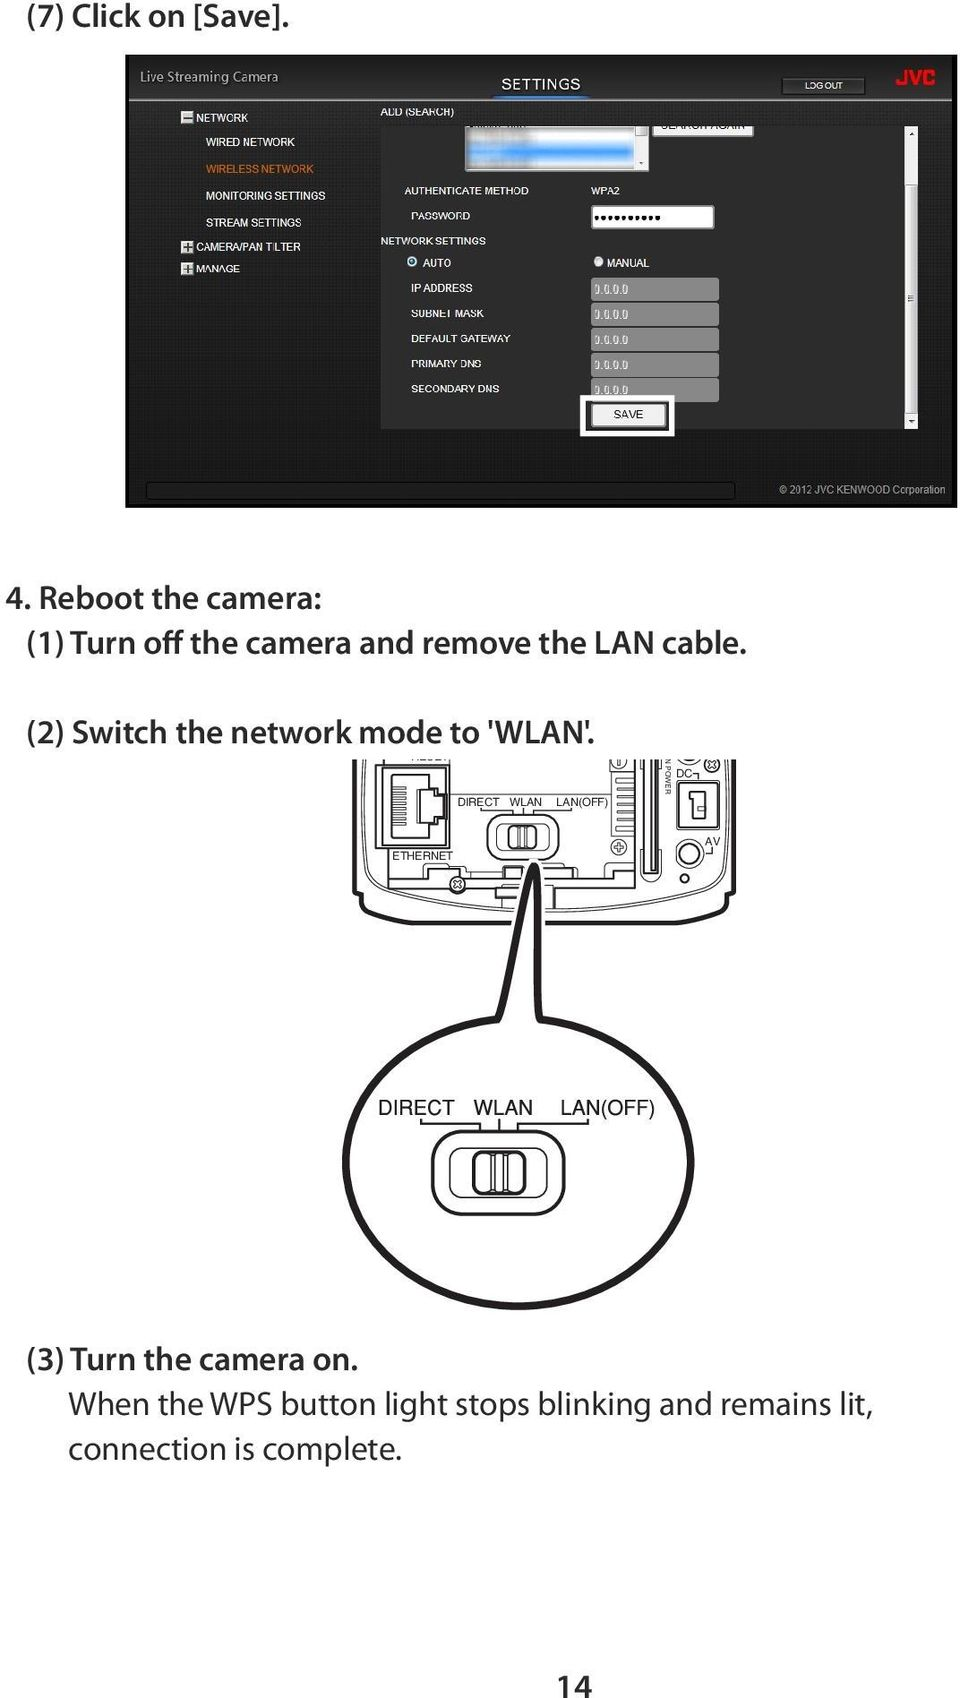 (2) Switch the network mode to 'WLAN'.